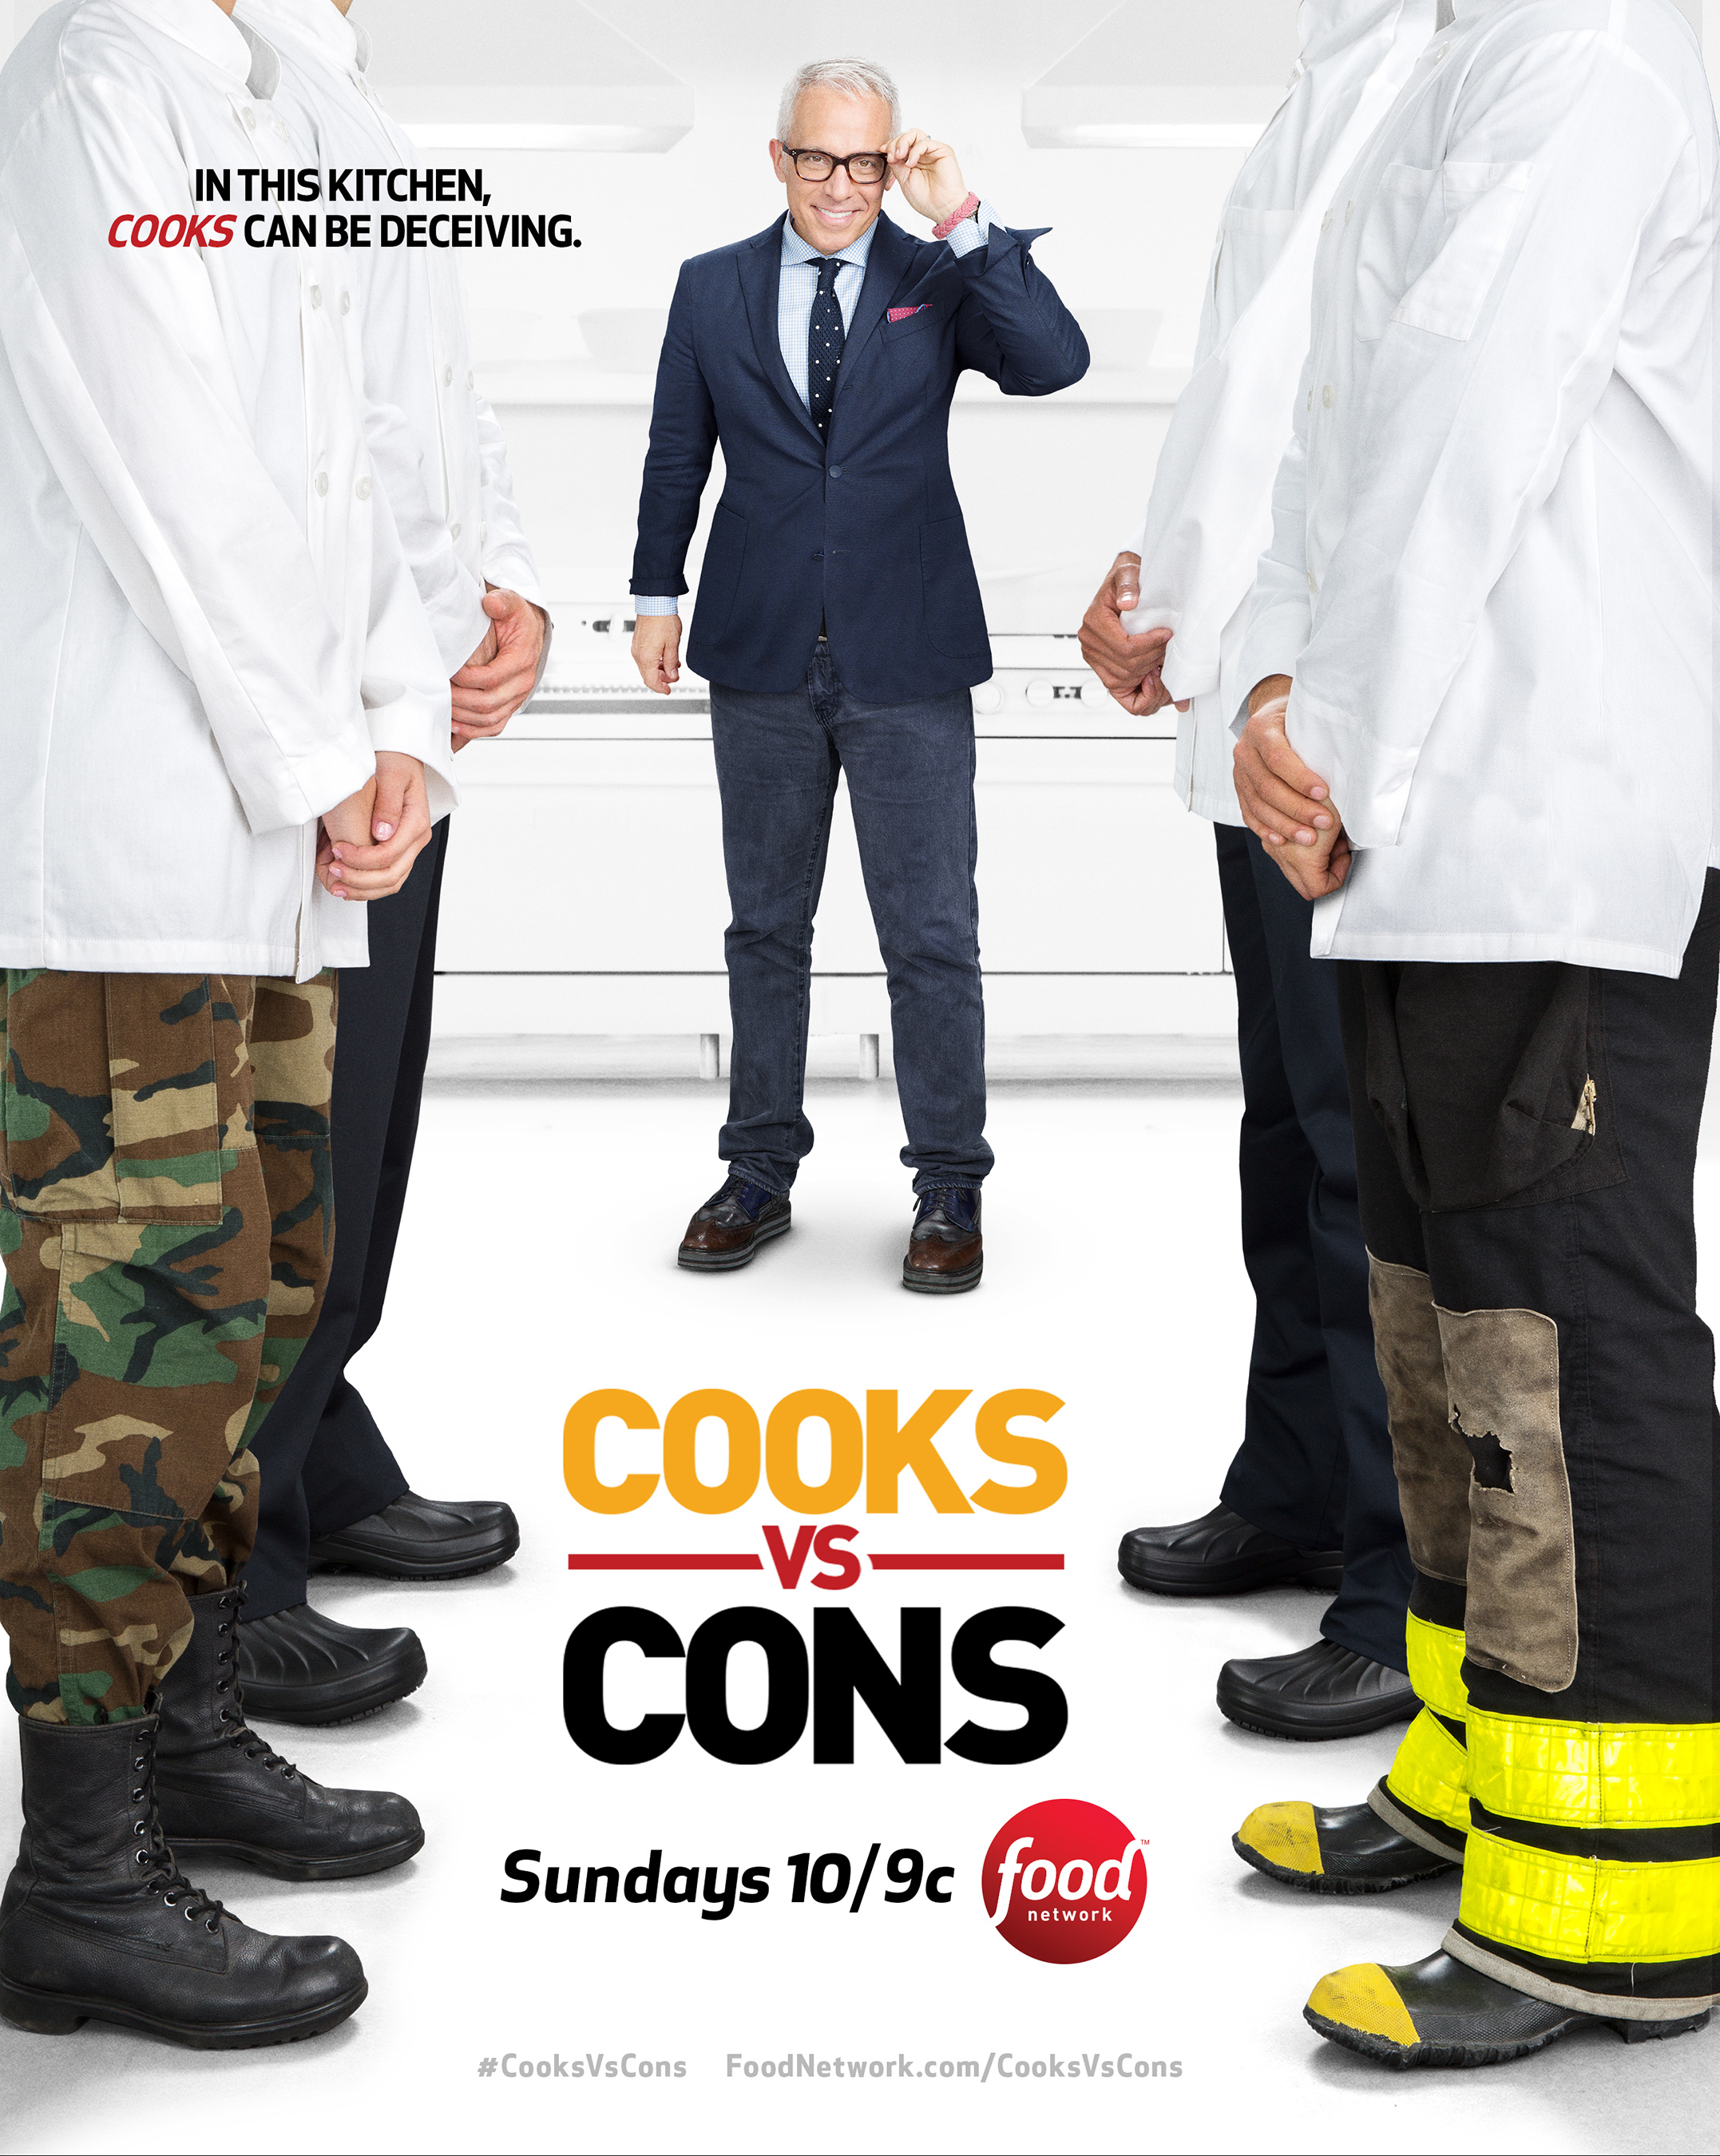 Tune in to the new season of Food Network's Cooks vs. Cons on July 10th at 10pm